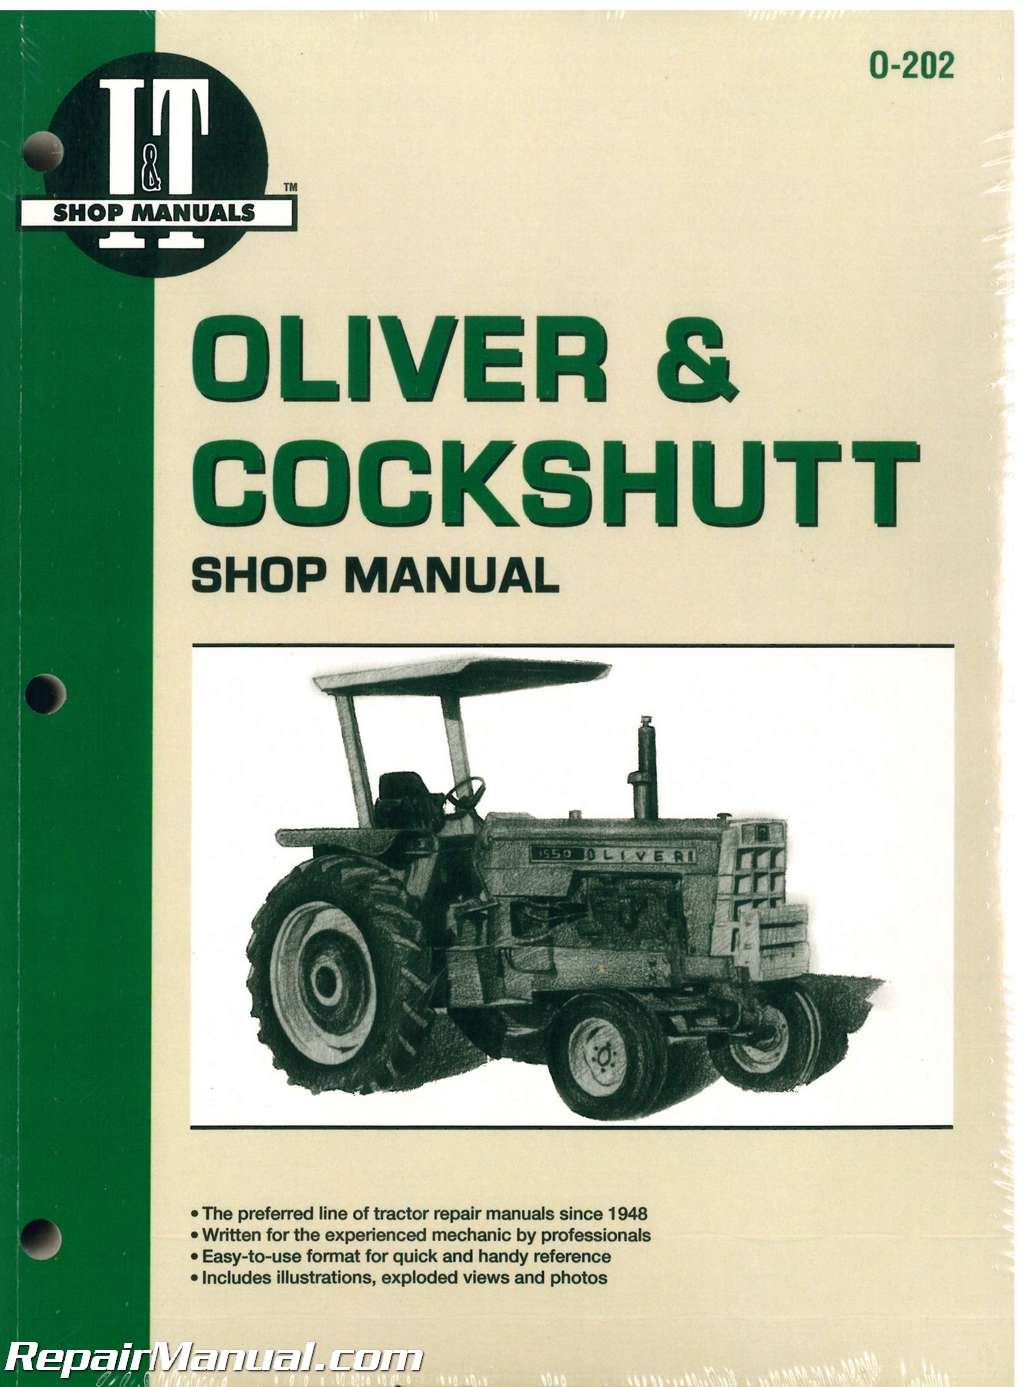 Oliver 1655 Tractor Wiring Diagram Automotive Schematic For 1800 Cockshutt G T Series Farm Repair Manual Rh Repairmanual Com 1650